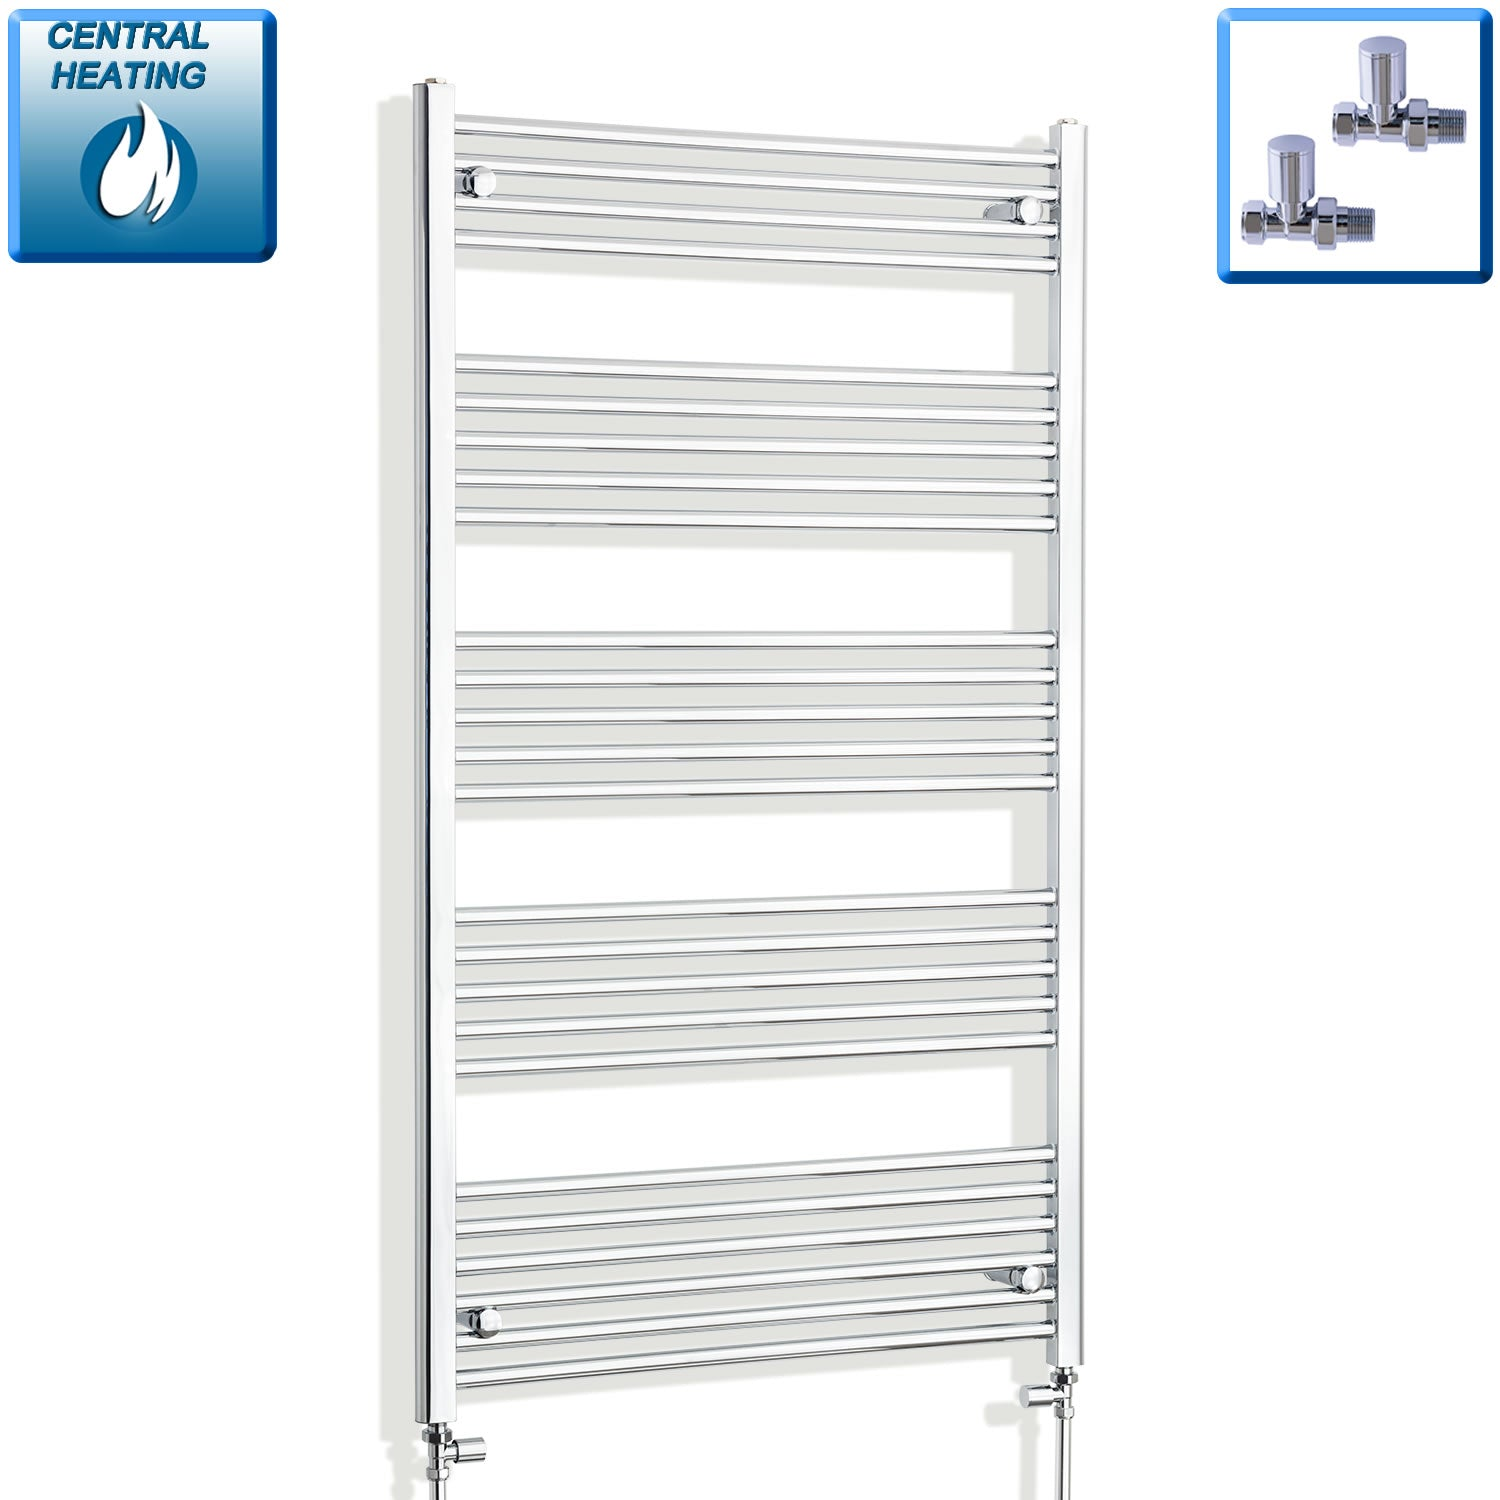 750mm Wide 1400mm High Chrome Towel Rail Radiator With Straight Valve